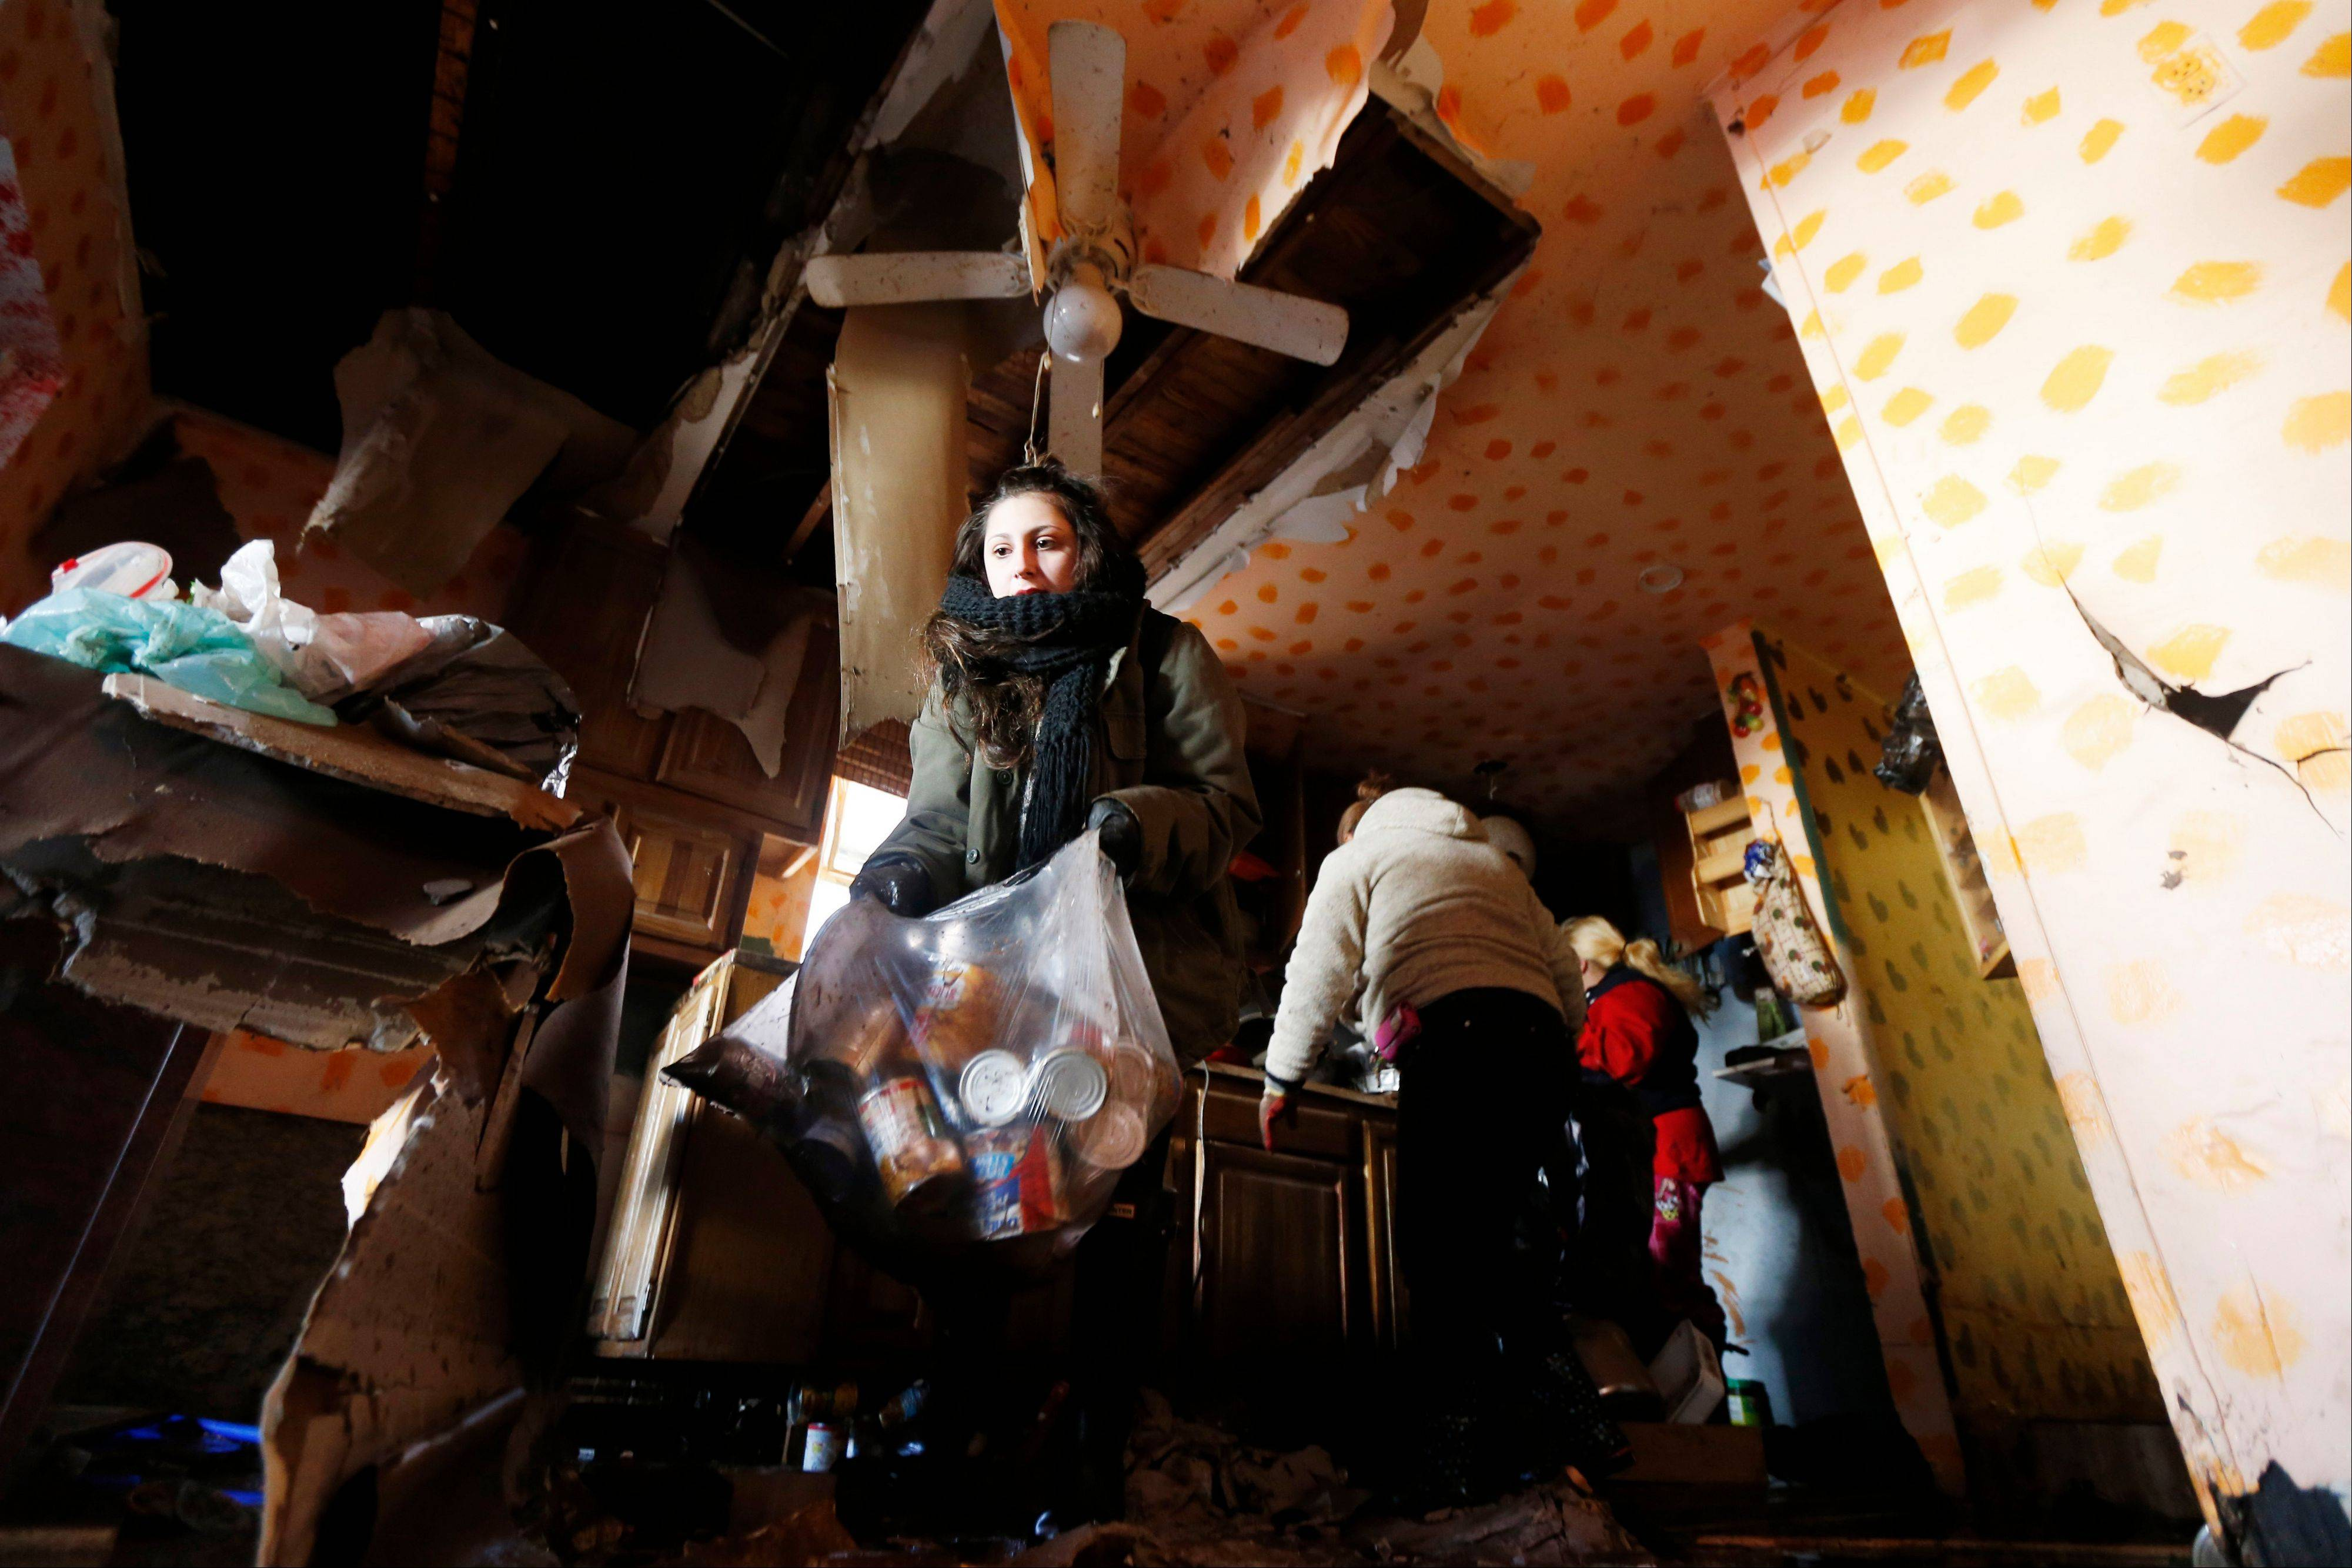 Associated Press Volunteer Christina Wilson, left, helps clean up the kitchen Saturday of the Ventura family, which was flooded during Superstorm Sandy, in Staten Island, N.Y. A Superstorm Sandy relief fund is being created just for residents of the hard-hit New York City borough.